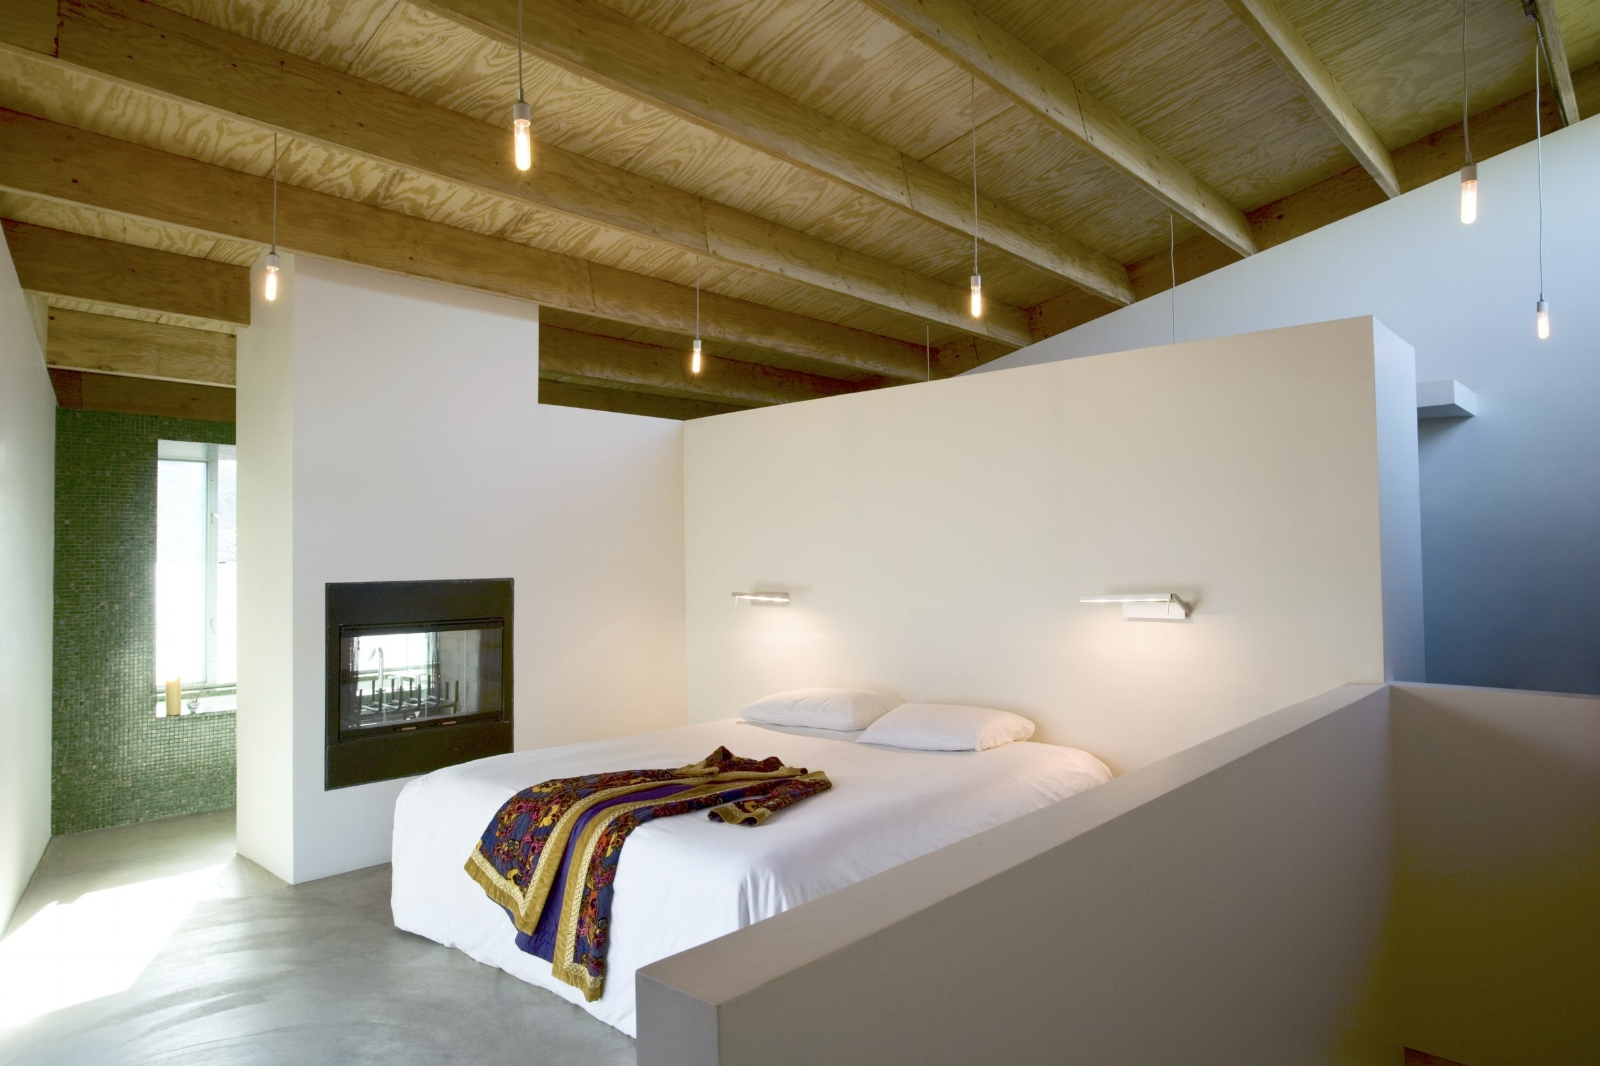 The master bedroom was conceived of as one open space under whose vaulted ceiling are found the bathroom and closet as well.